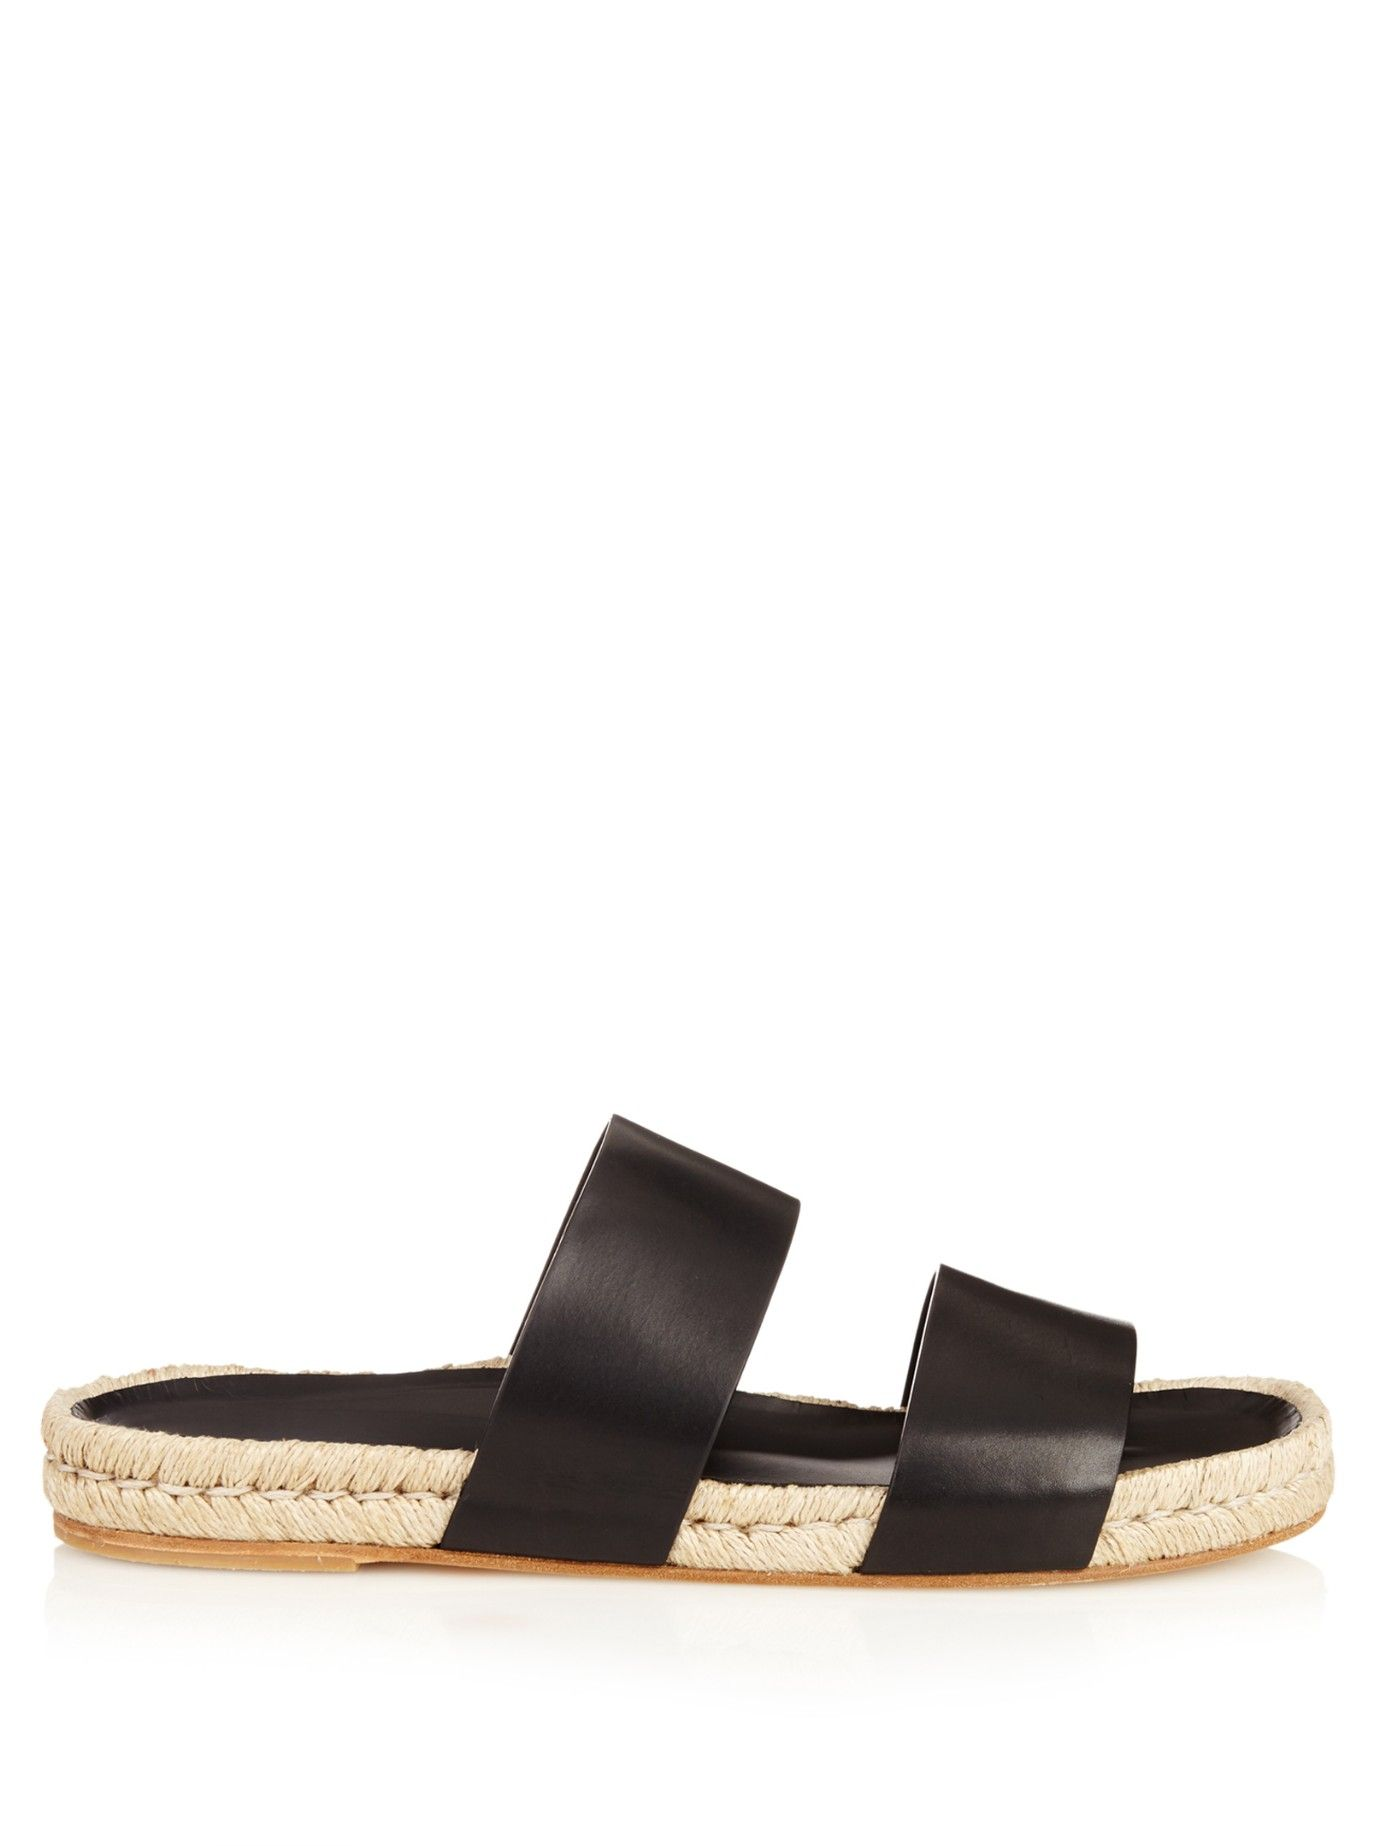 low price online for sale cheap real Balenciaga Leather Espadrille Sandals clearance 2014 unisex Zz4zCXsa0q